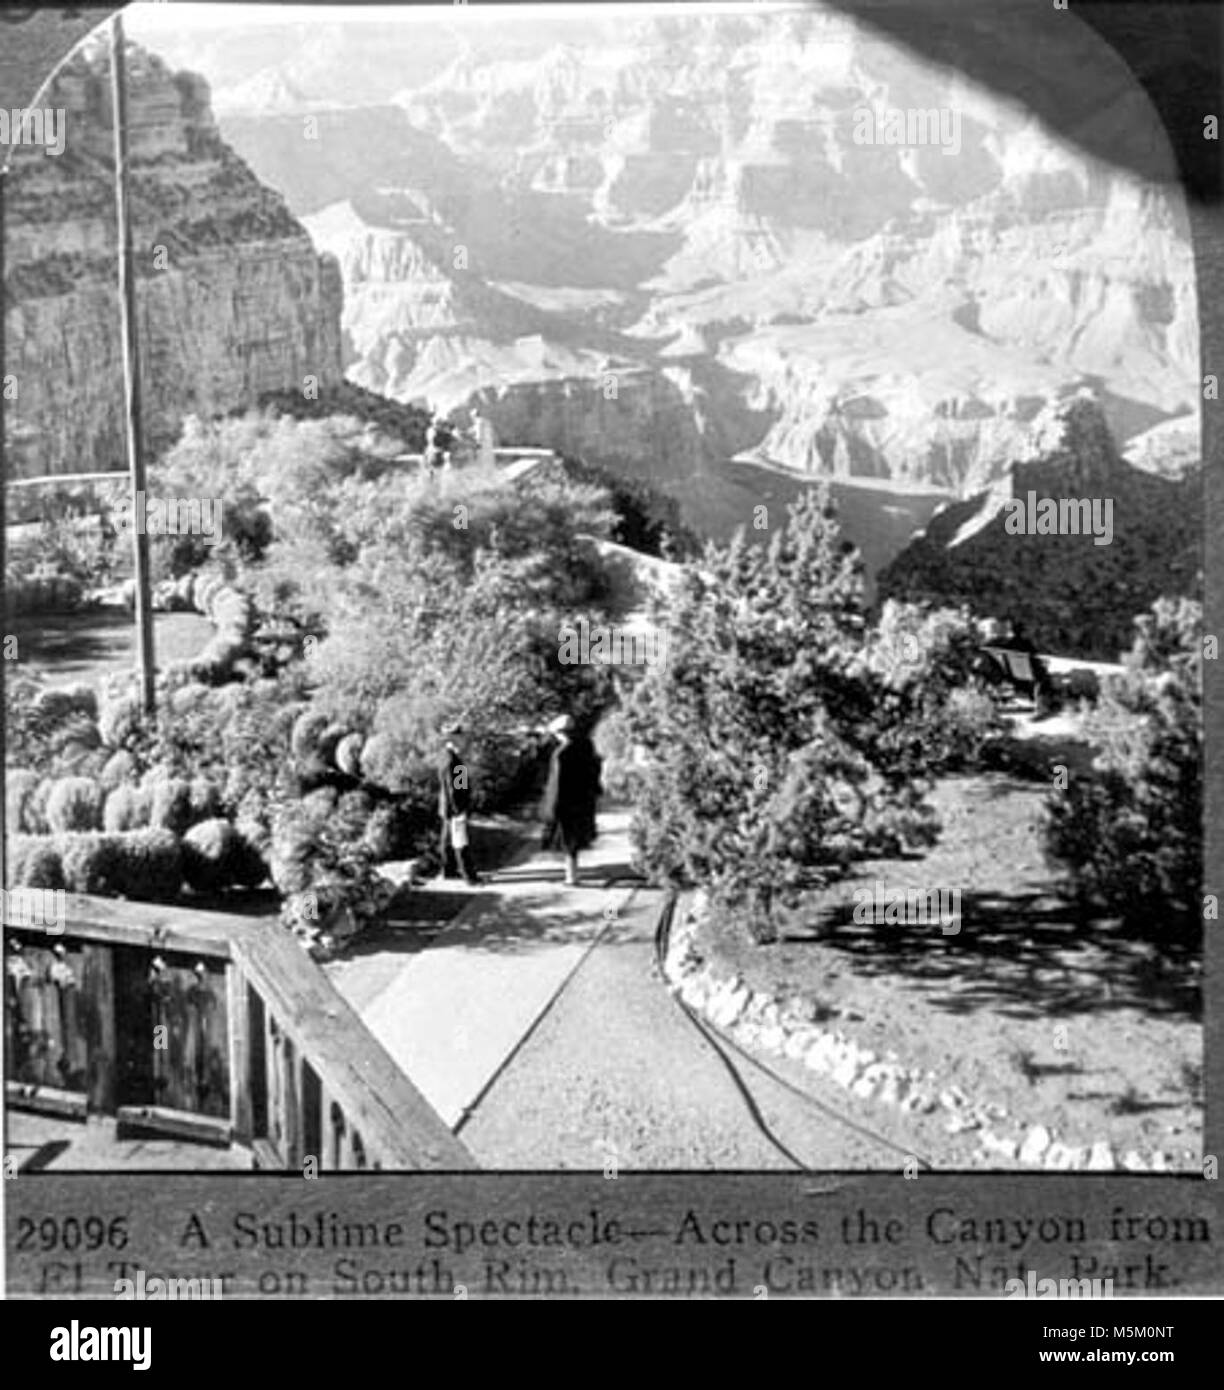 Grand Canyon Historic El Tovar Hotel . LOOKING FROM THE SECOND FLOOR BALCONY OF THE EL TOVAR HOTEL DOWN PAST THE - Stock Image